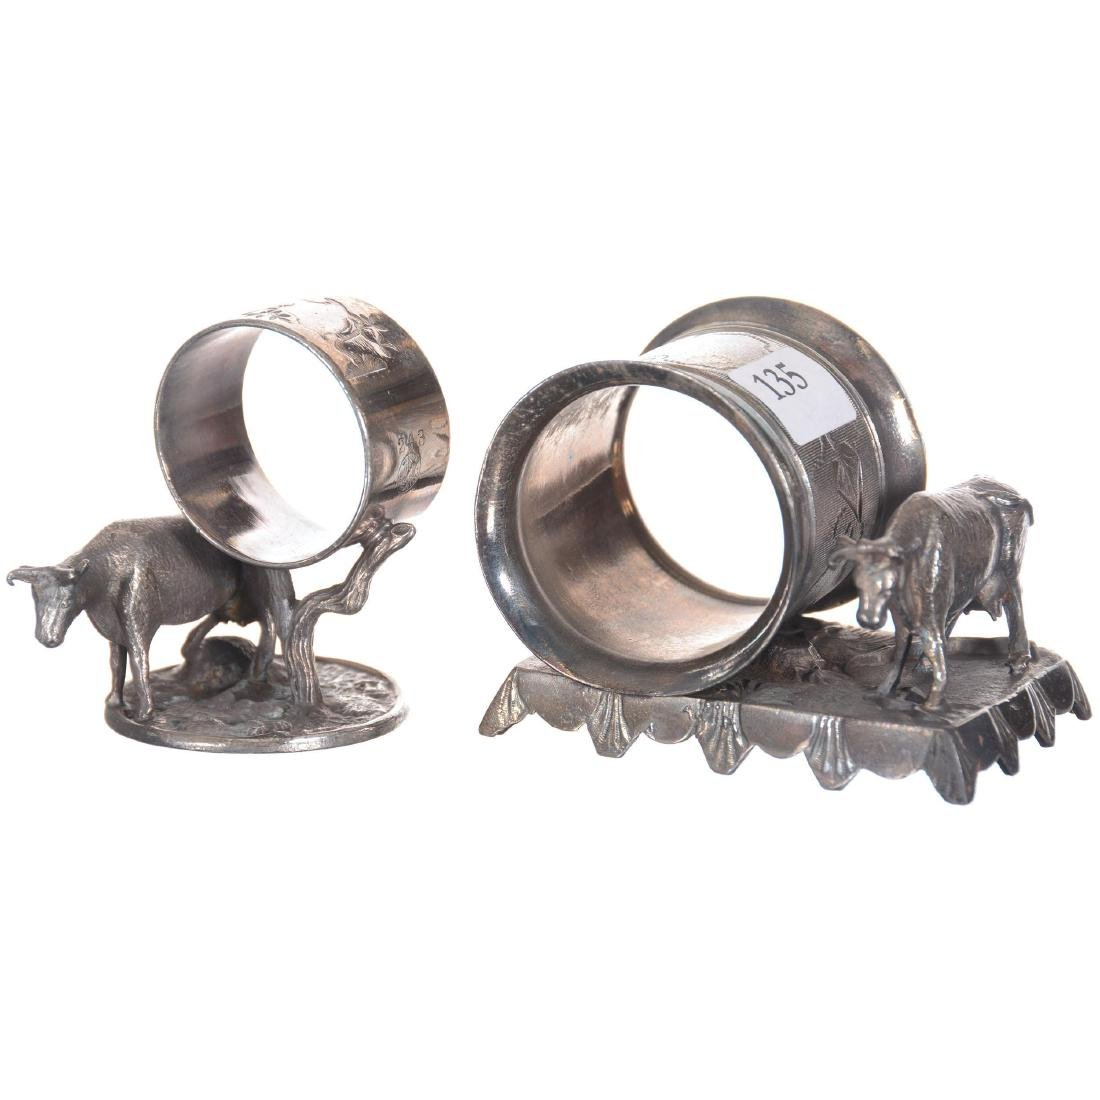 Two Figural Cow Silver-plate Napkin Rings